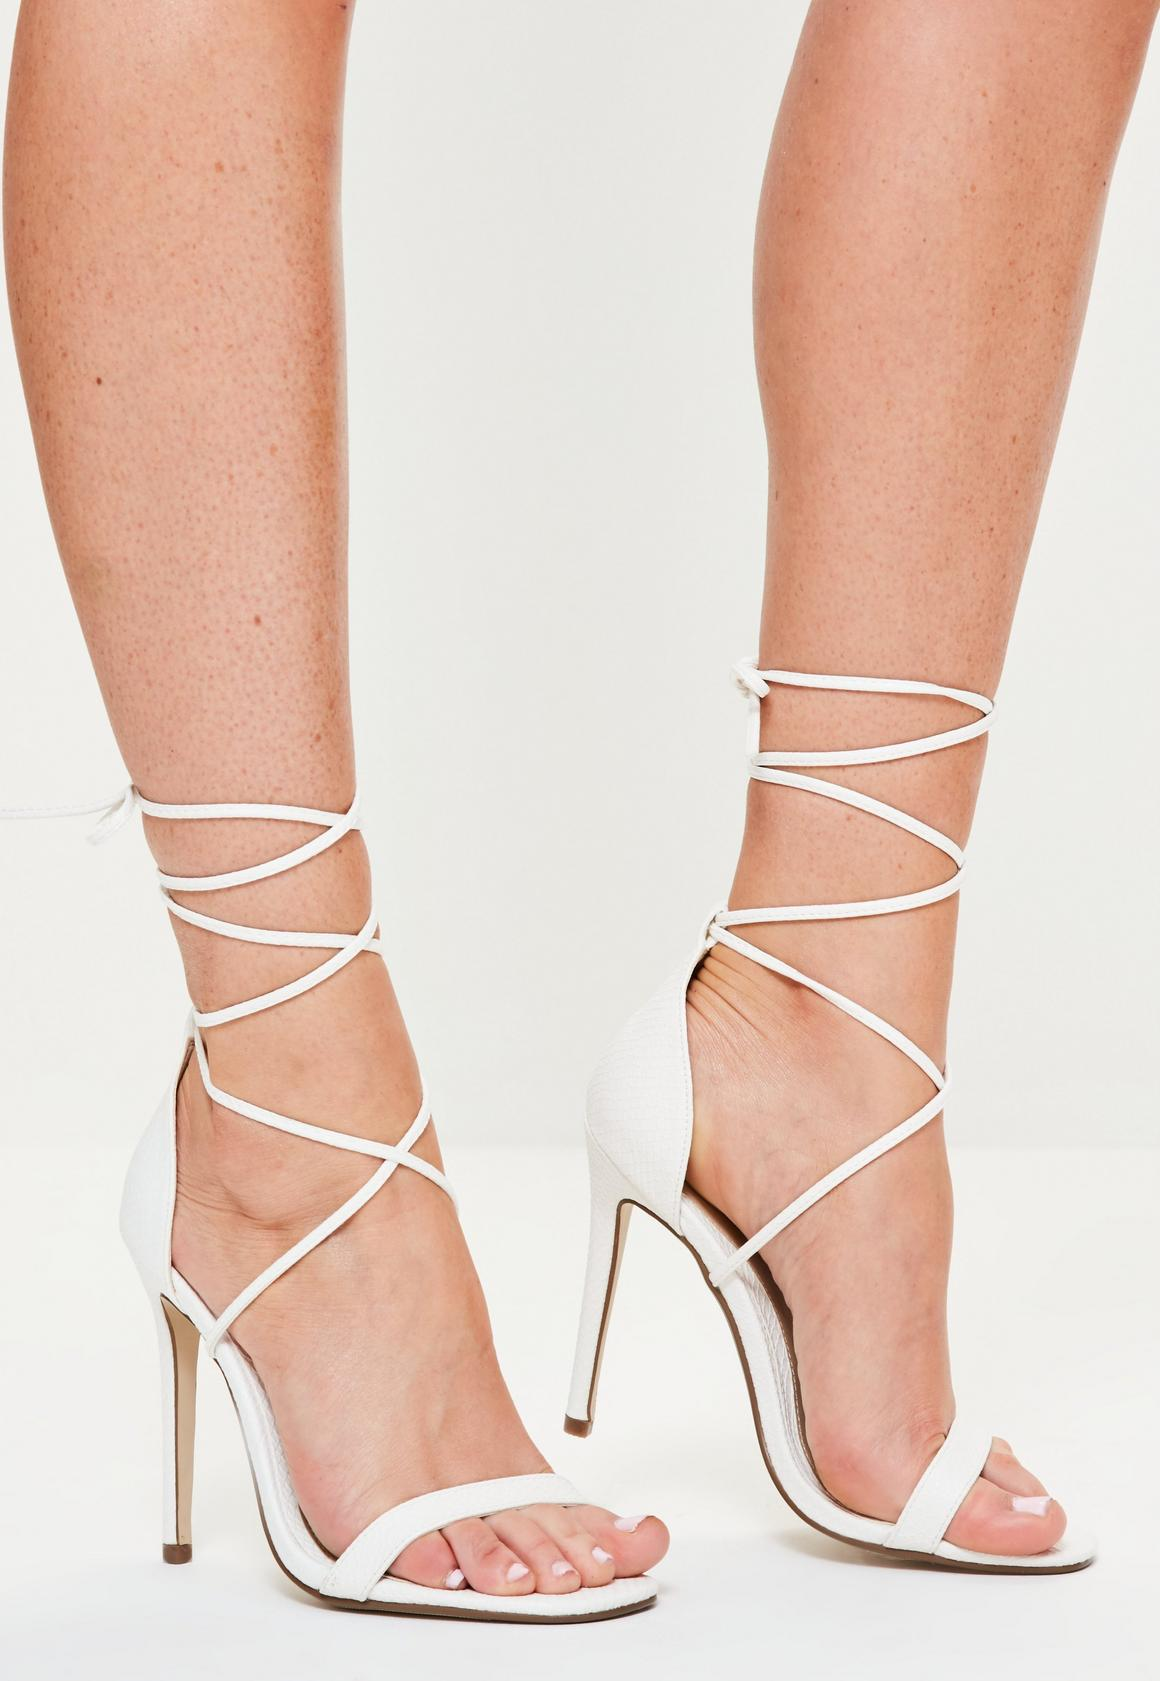 Lace Up Barely There Heeled Sandals White Croc | Missguided